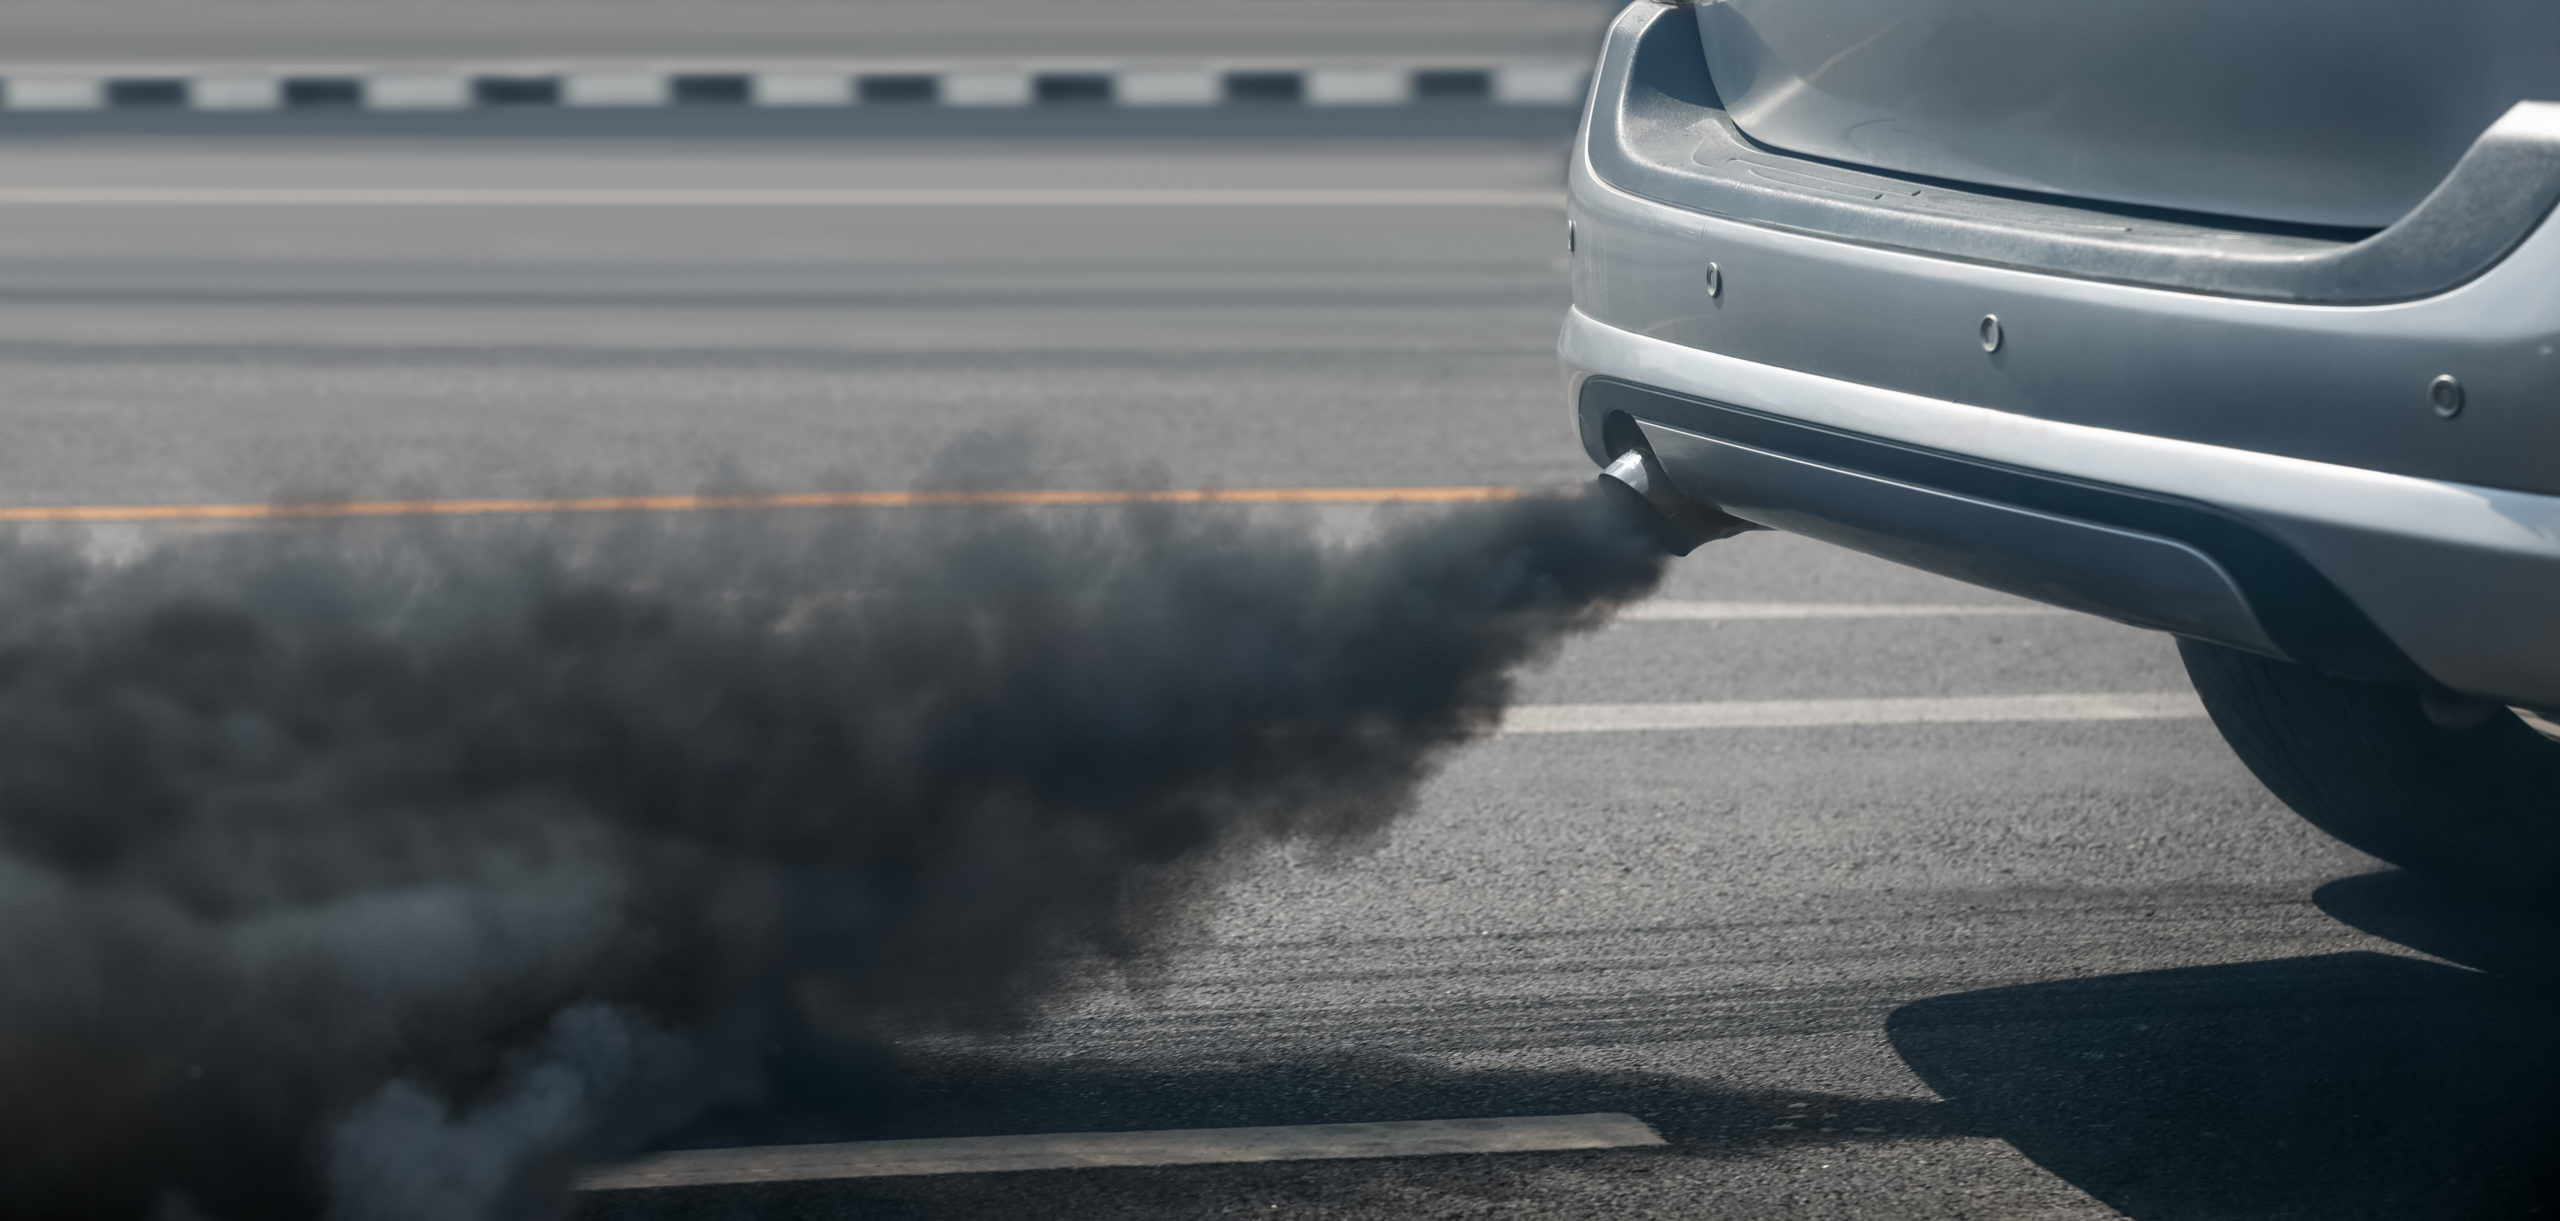 air pollution crisis in city from diesel vehicle exhaust pipe on